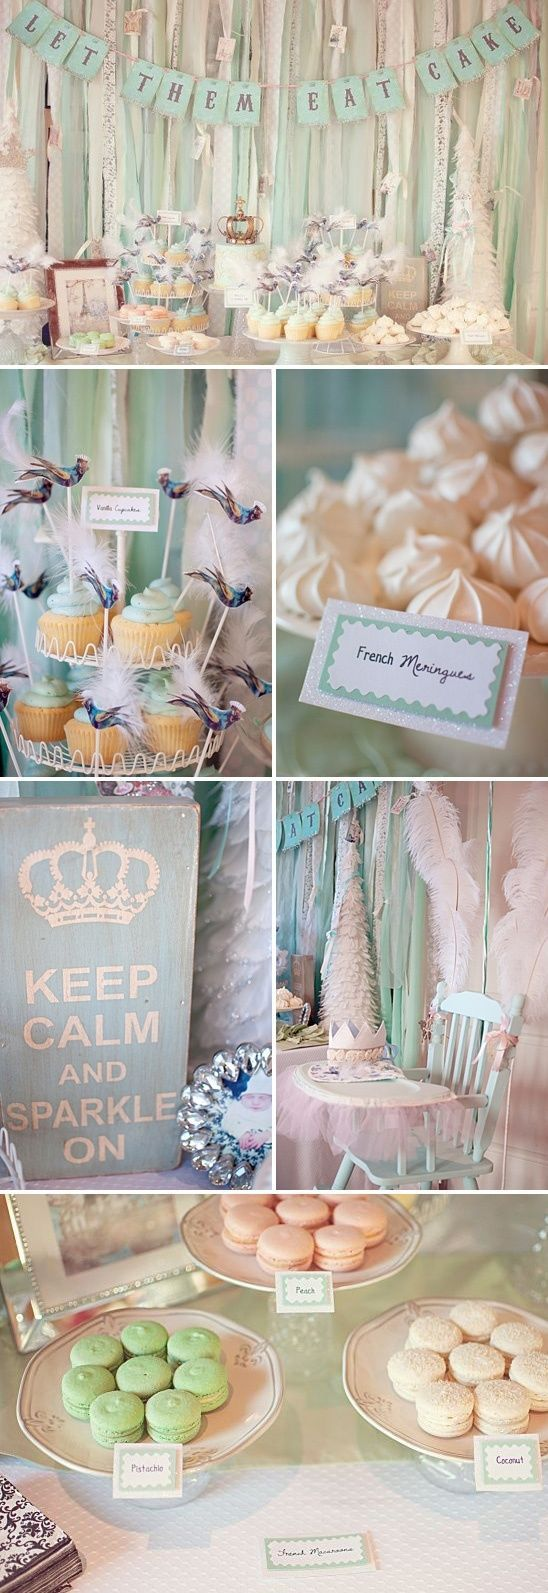 Christmas Party Ideas For Girls Part - 41: Cute Idea If I Ever Have A Baby Girl :) Winter In Paris Themed Birthday  Party. Sinnott - Next Yearu0027s Christmas Party Theme!